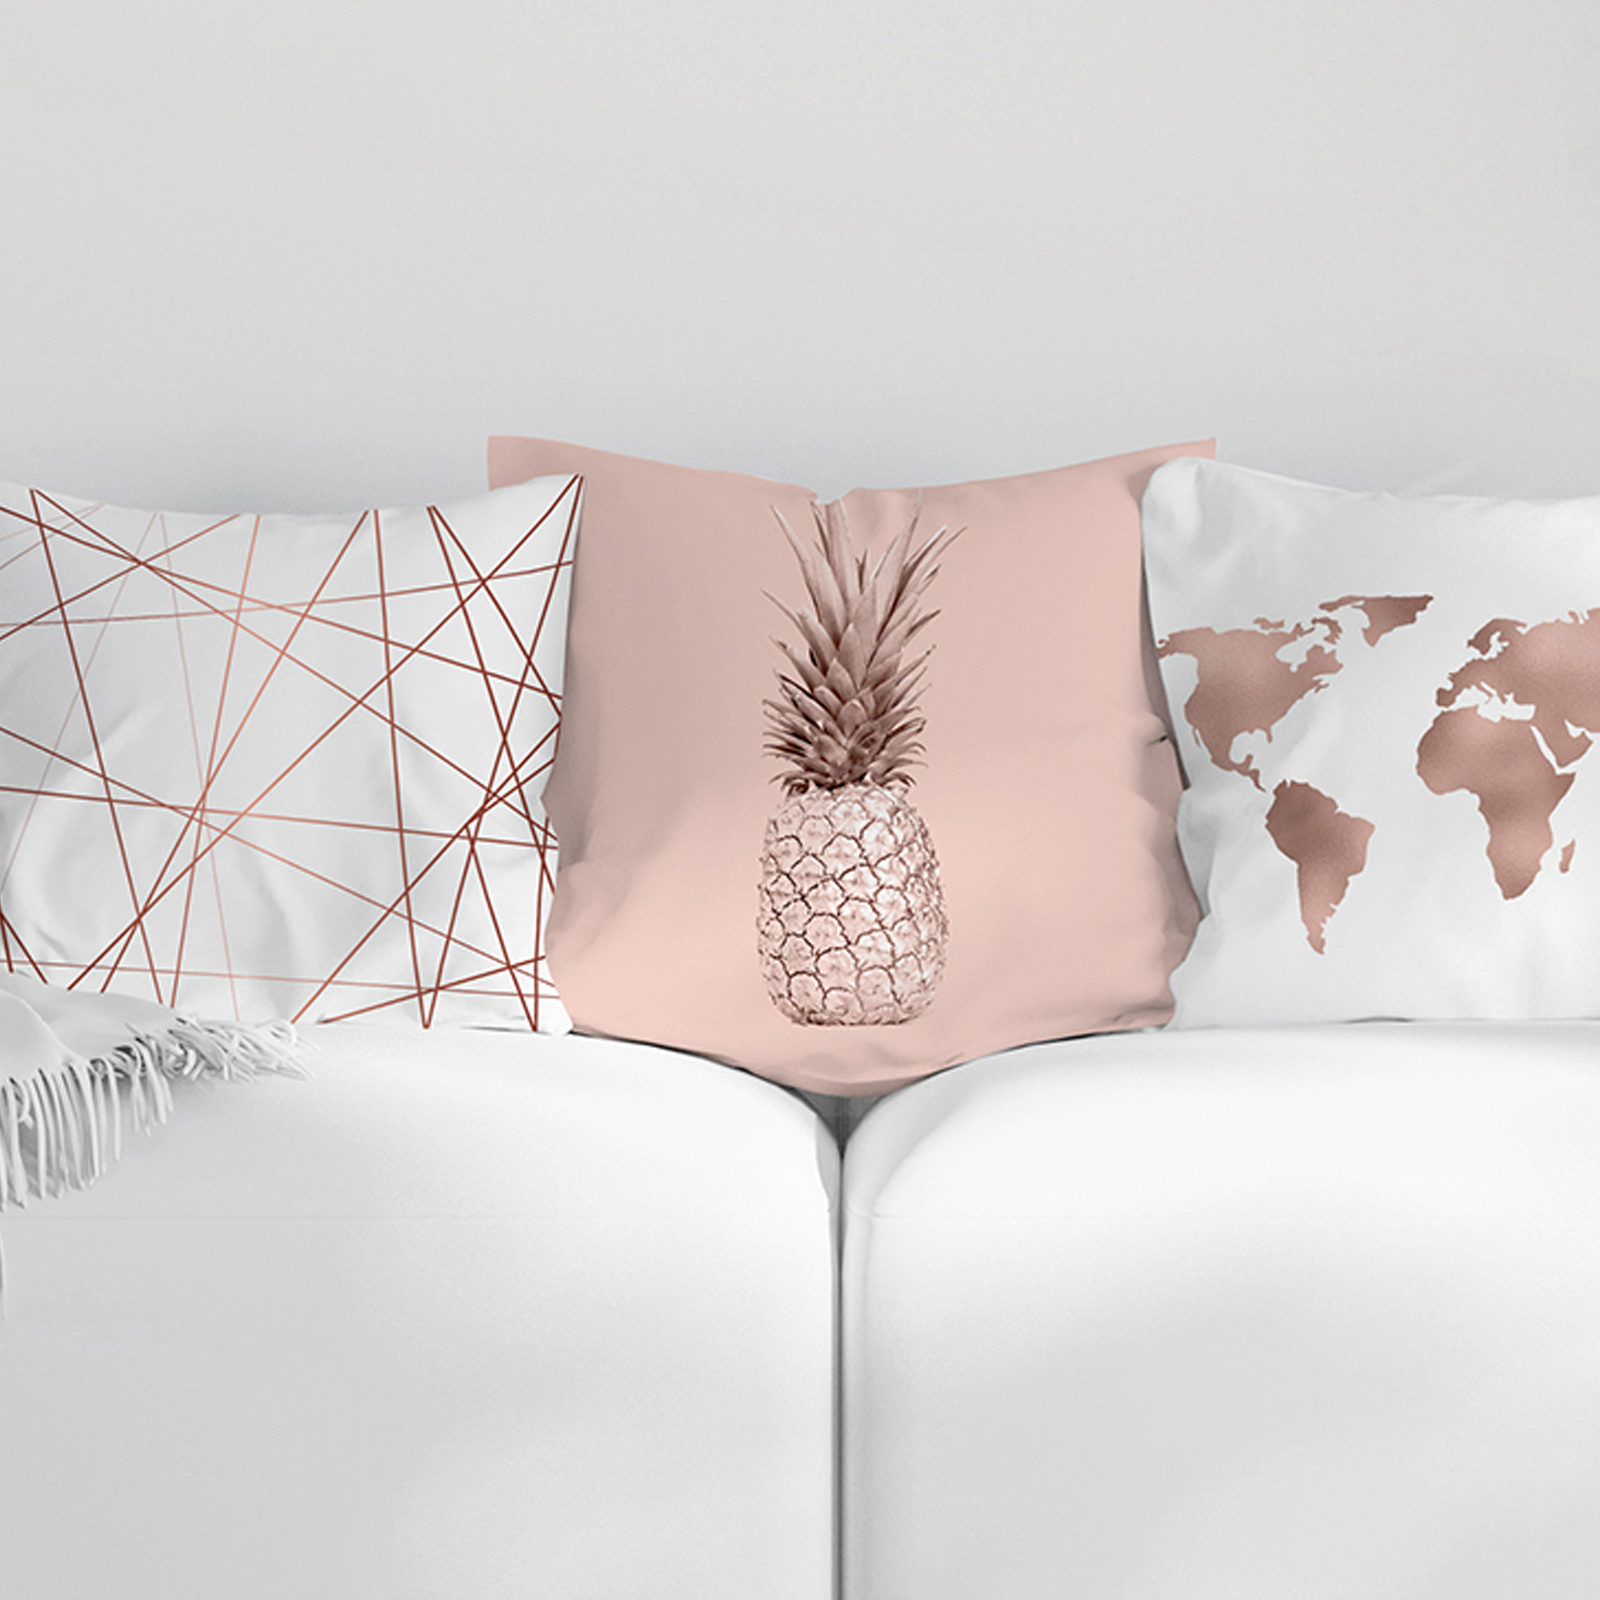 Miraculous Us 2 39 31 Off Modern Rose Gold Flower Cashmere Cushion Cover Pillowcase Sofa Throw Pillows For Christmas New Year Party Home Decoration In Cushion Caraccident5 Cool Chair Designs And Ideas Caraccident5Info